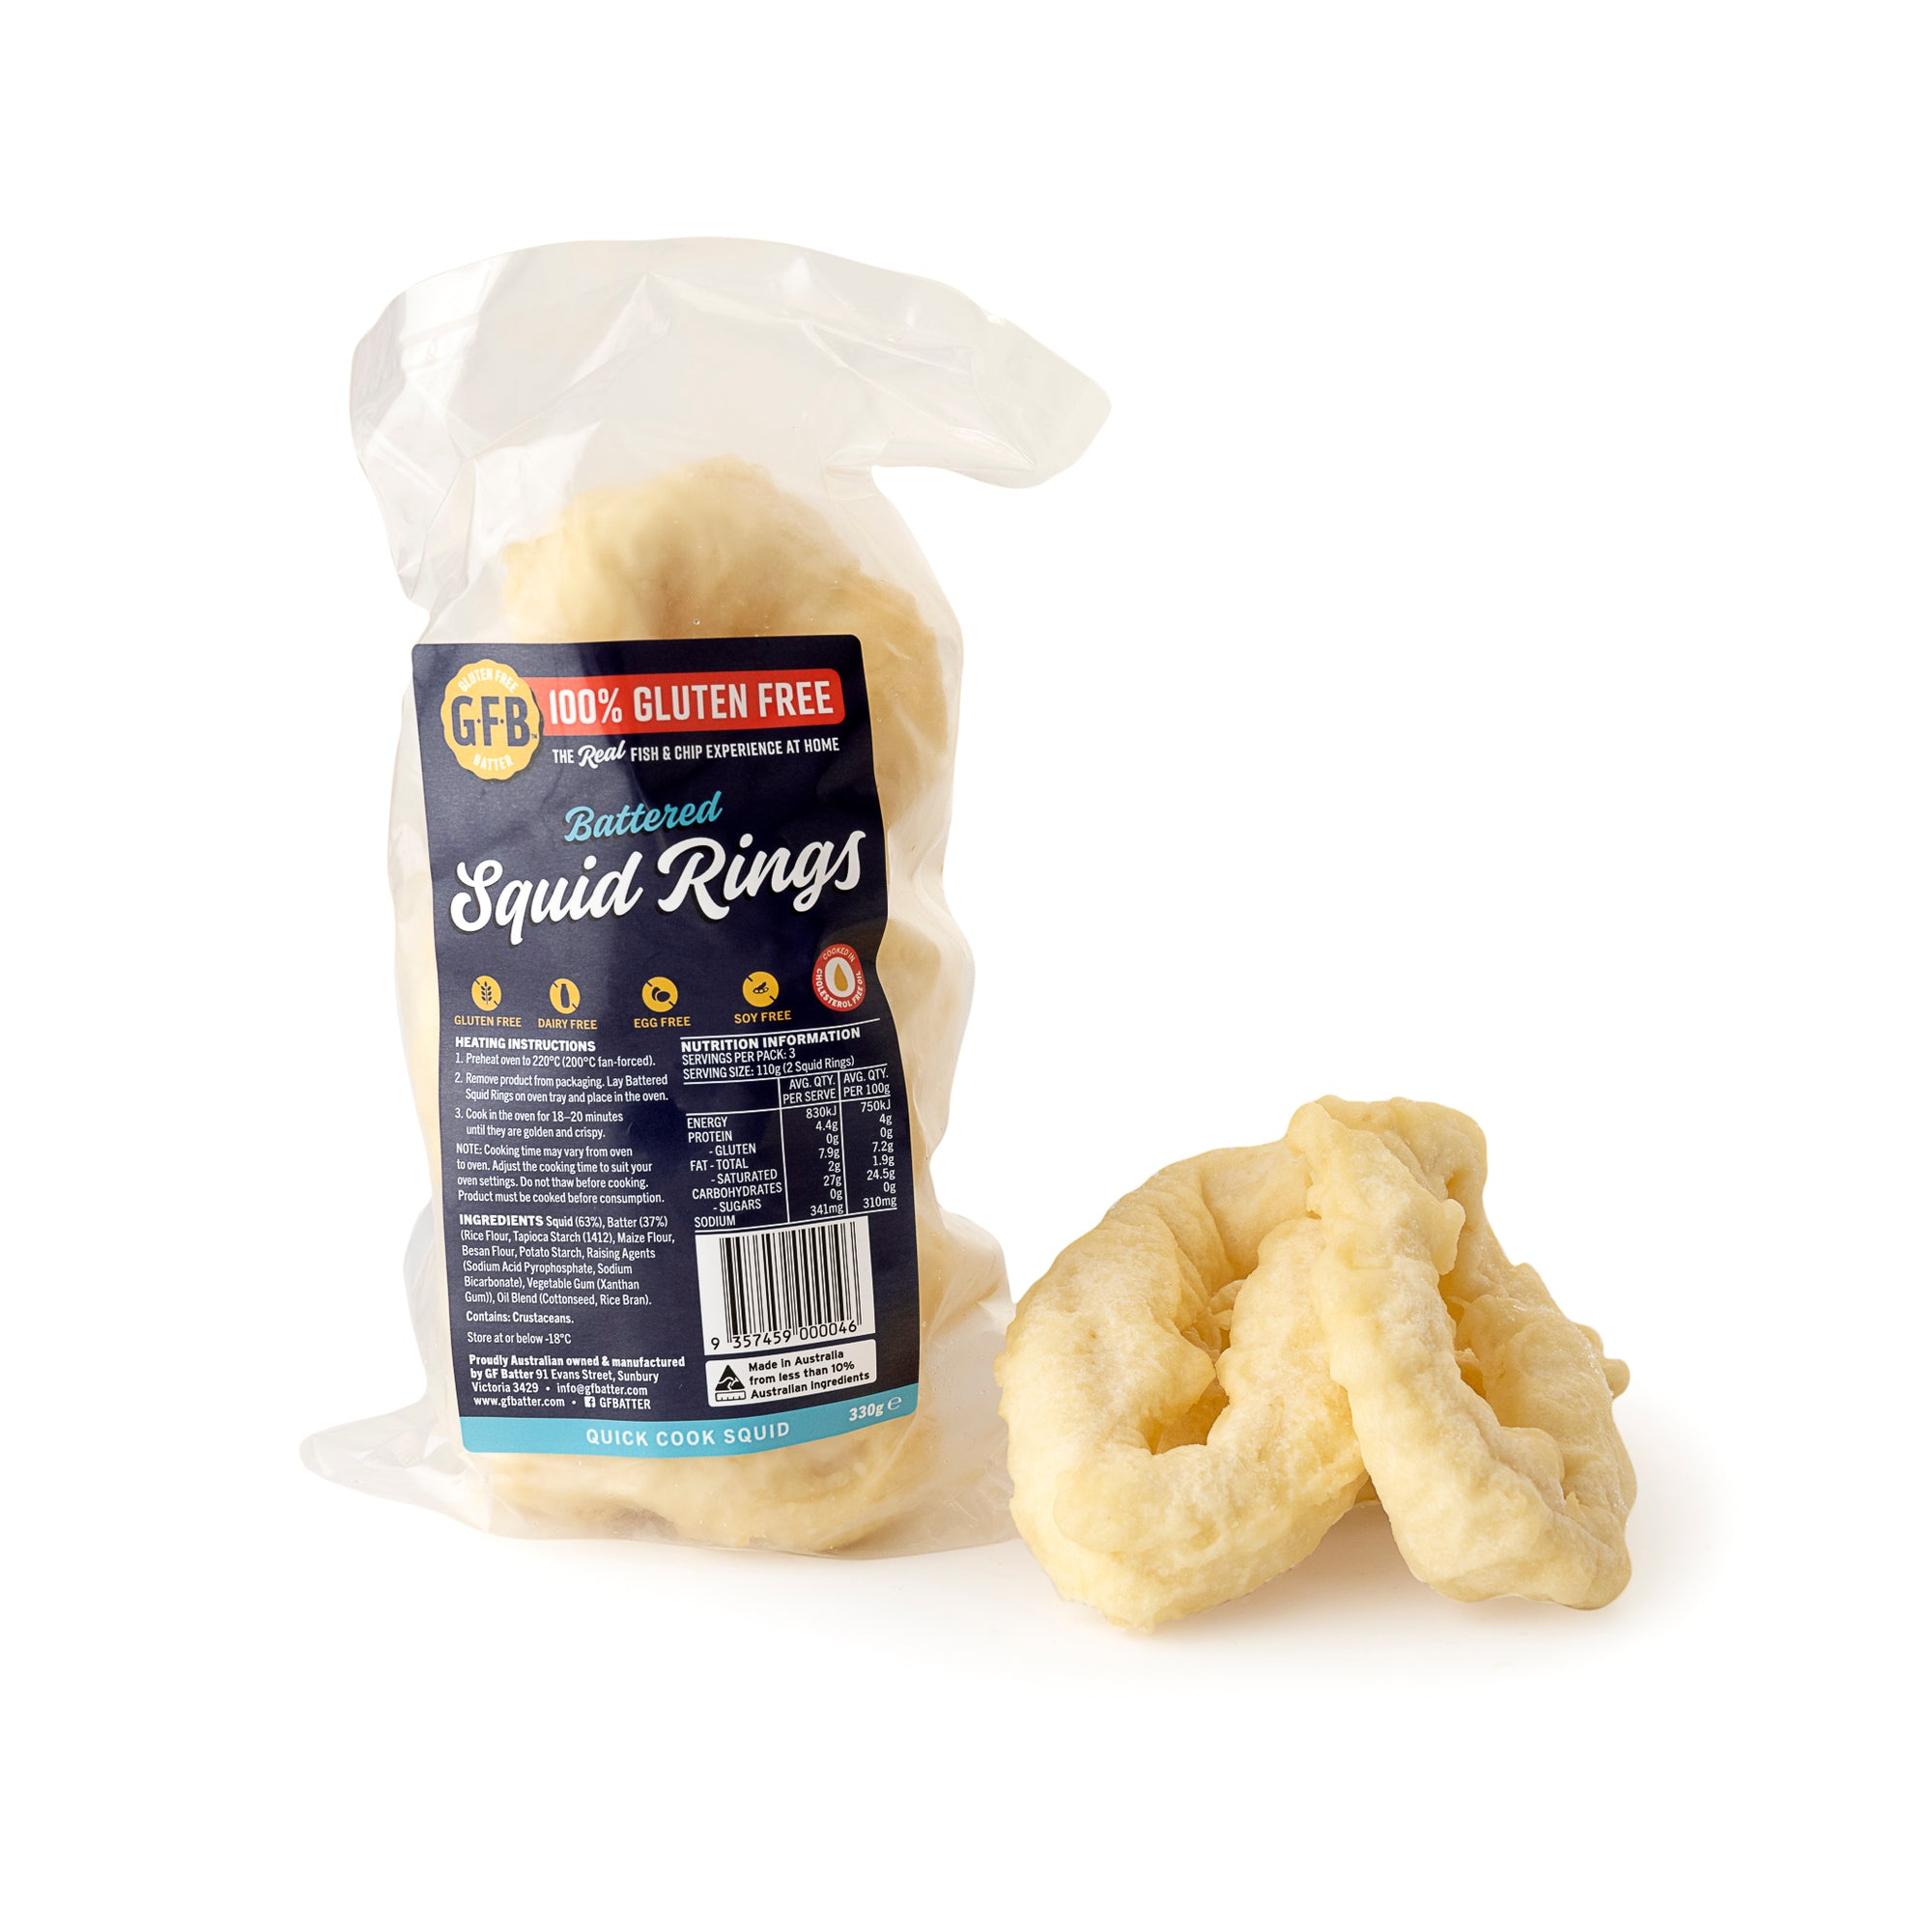 GF Batter - Battered Squid Rings 6 Pack